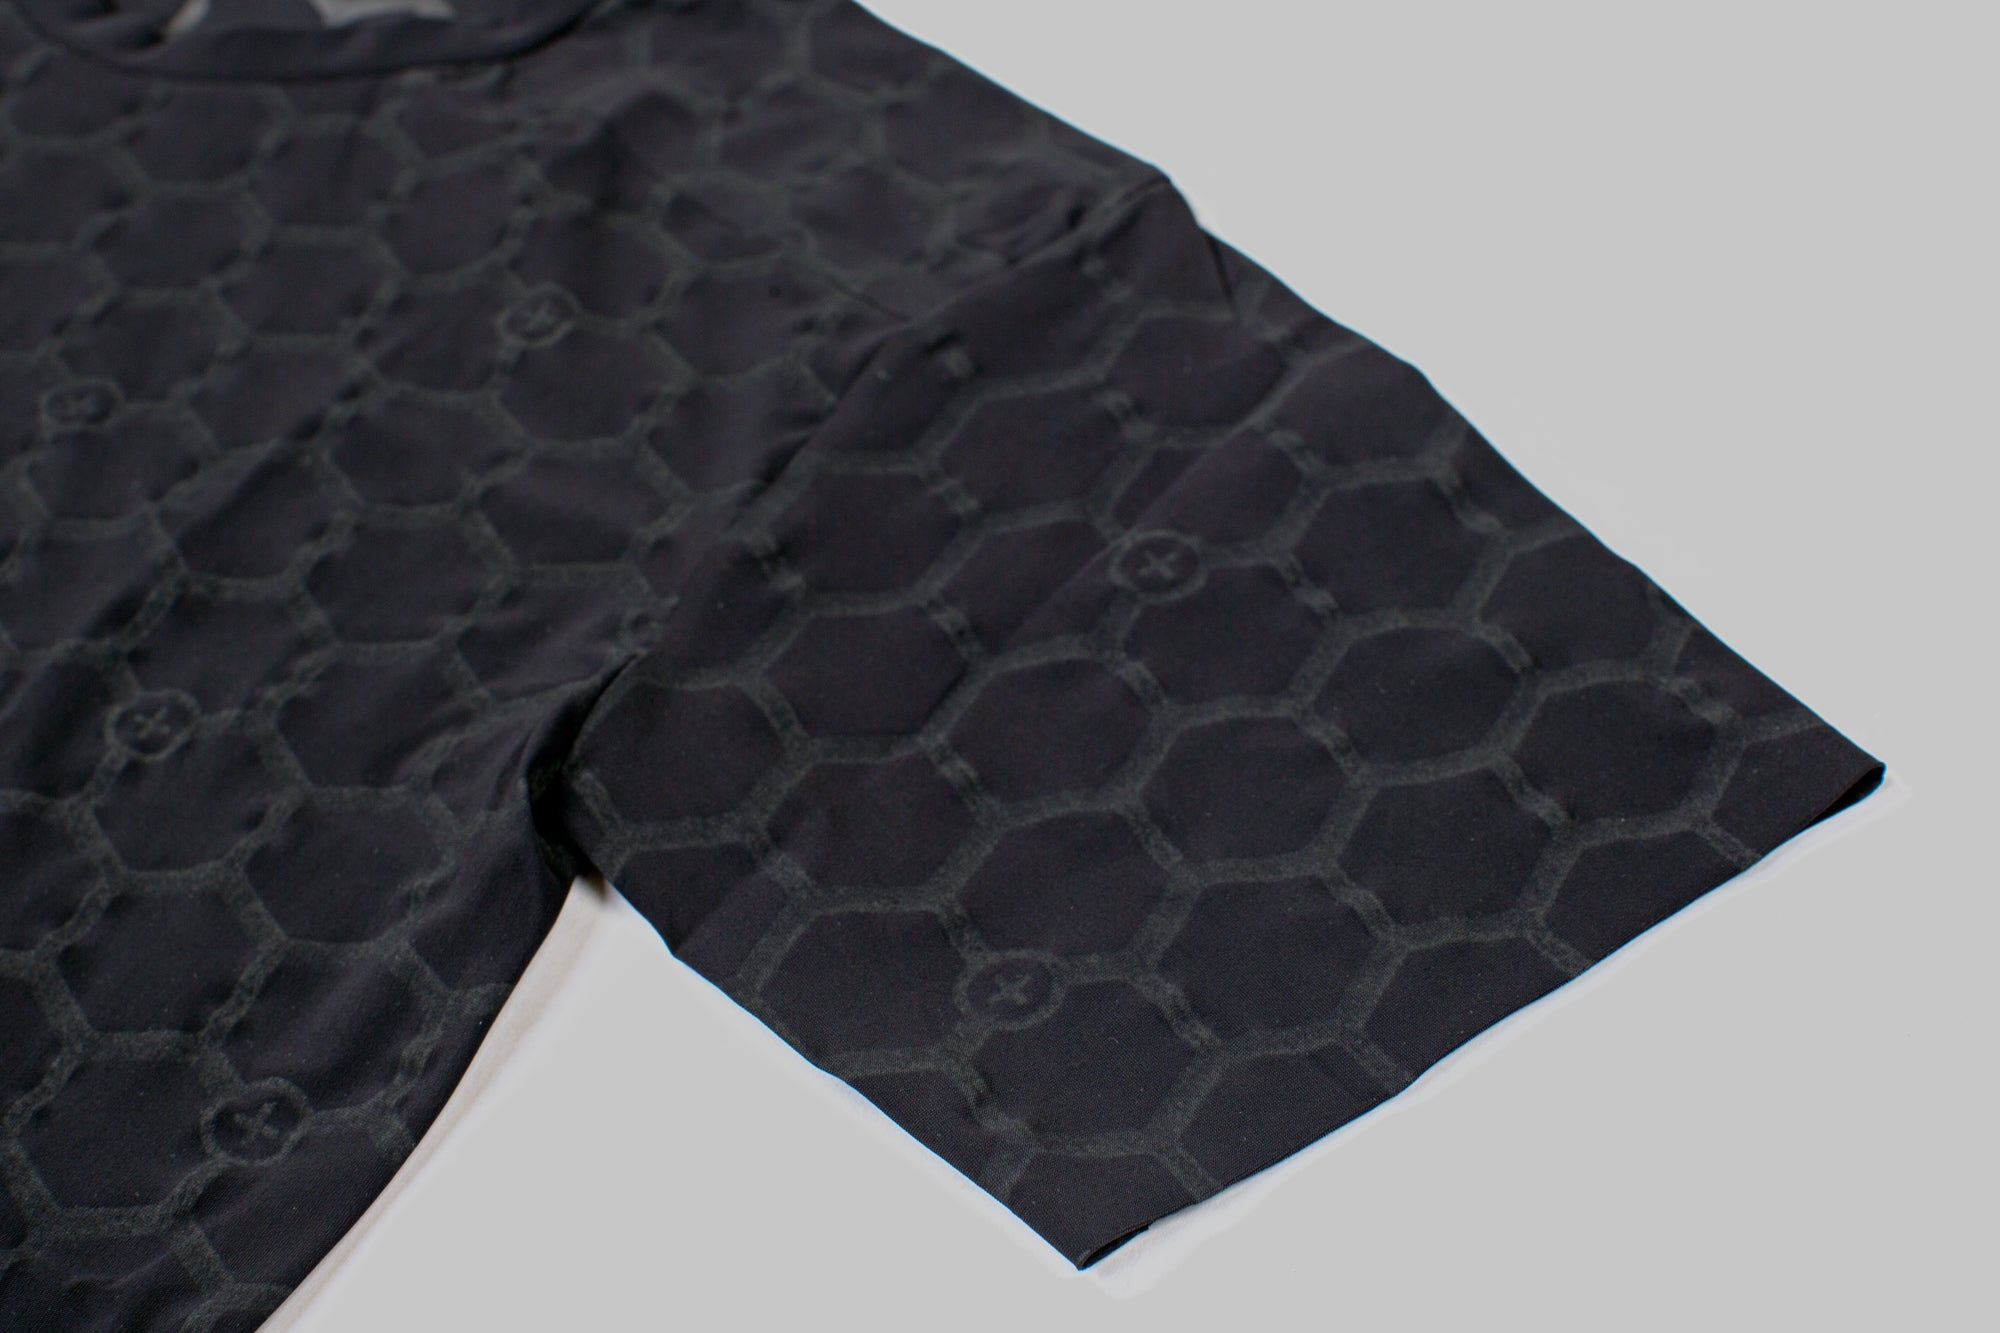 Seamless bonding minimises irritation to the rider. The bonded edges also provide enhanced breathability by eliminating the need to sew and tape multiple layers of fabric together. As well as reducing weight, this creates less bulk and a better fit.